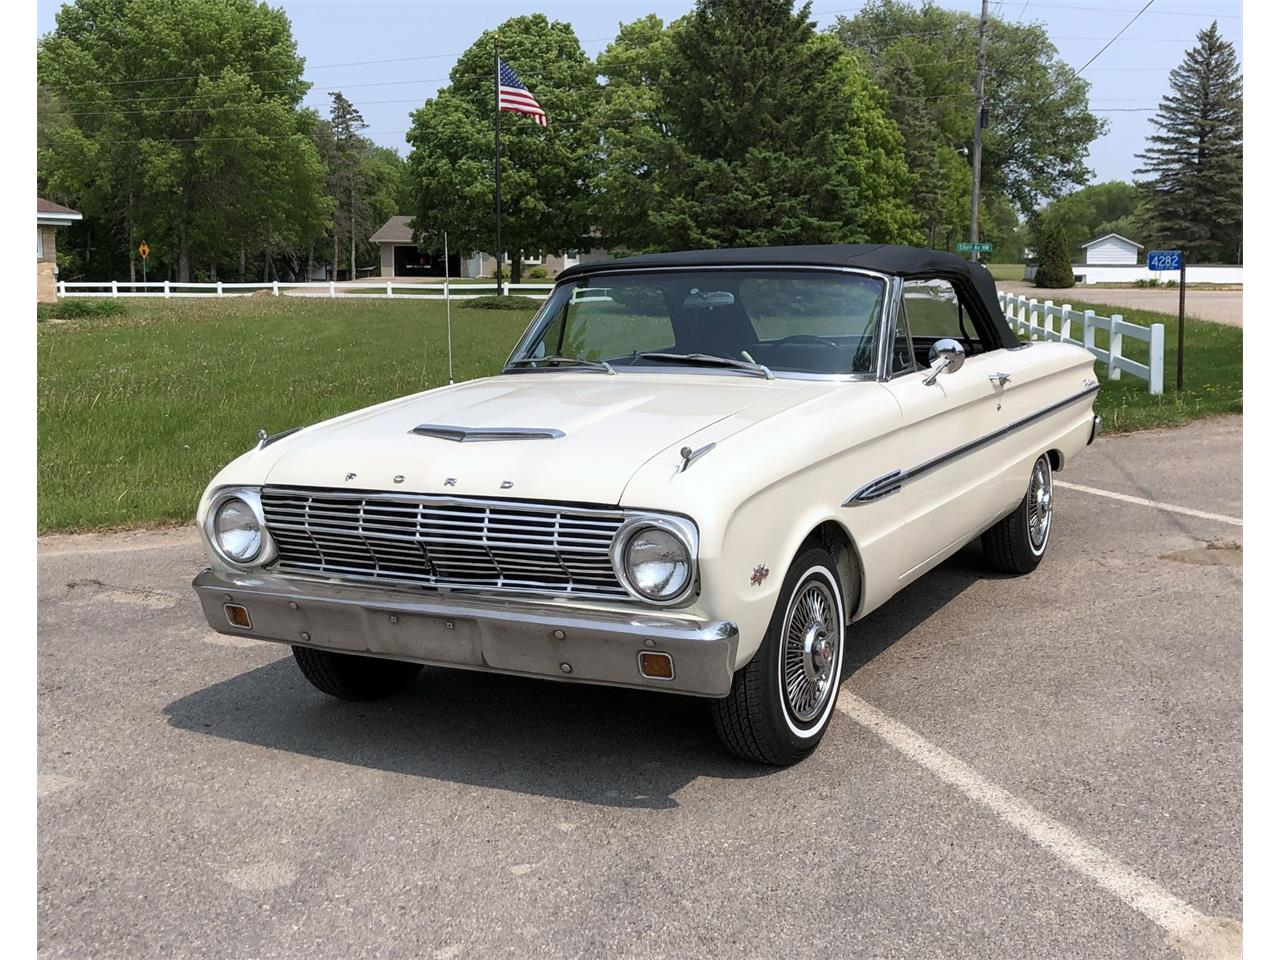 For Sale: 1963 Ford Falcon in Maple Lake, Minnesota